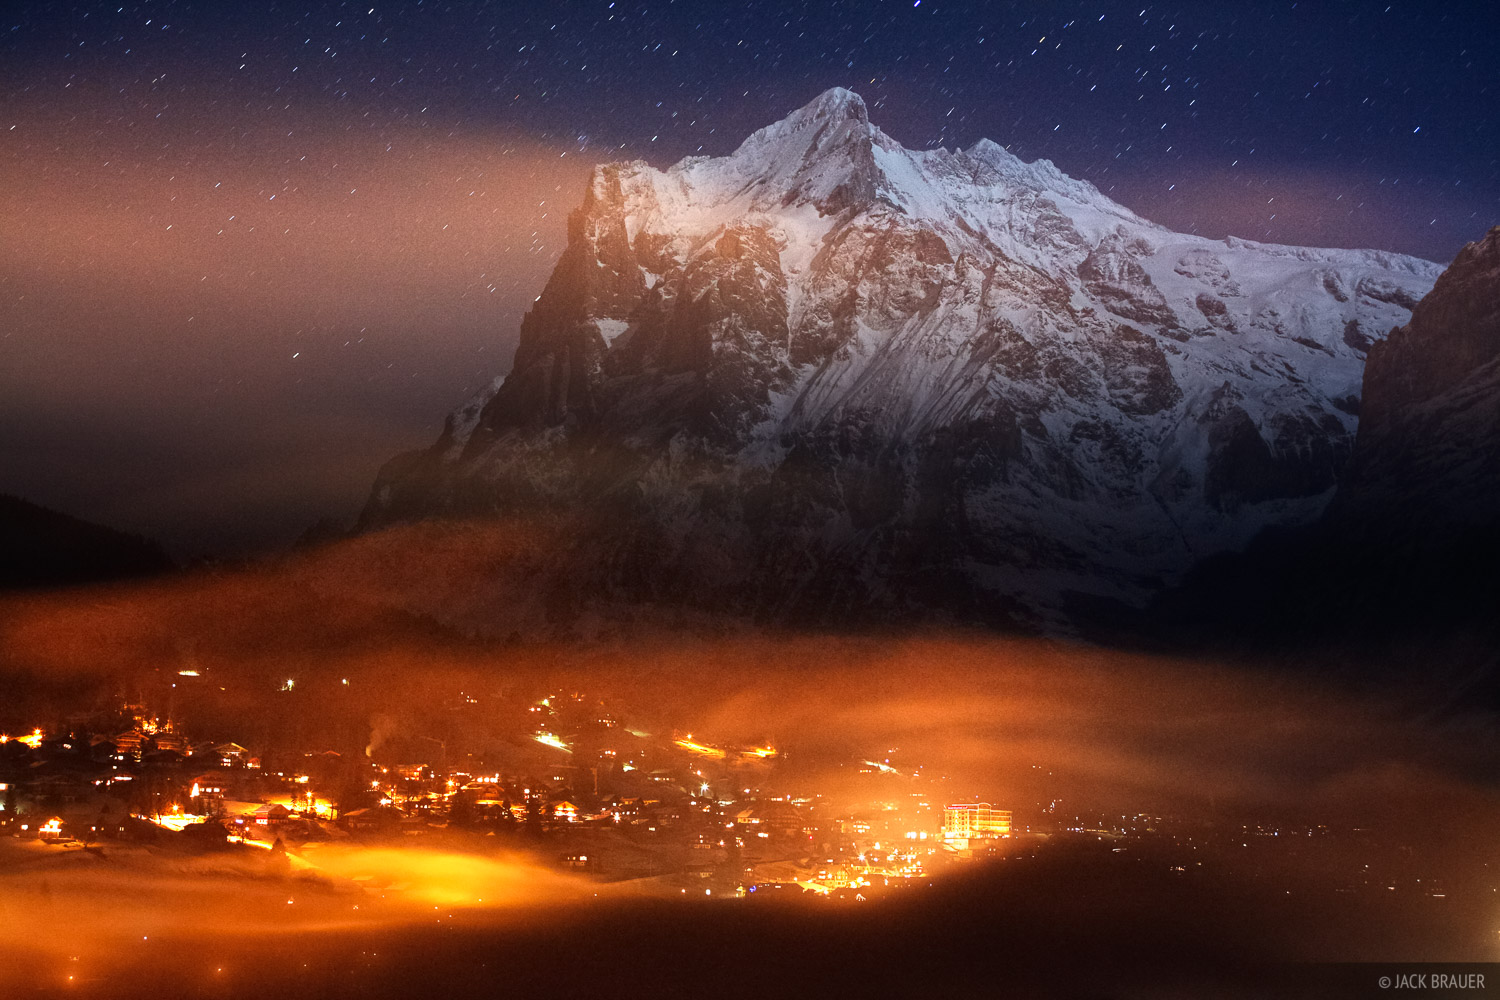 Grindelwald, Wetterhorn, moonlight, Jungfrau, Switzerland, Bernese, photo